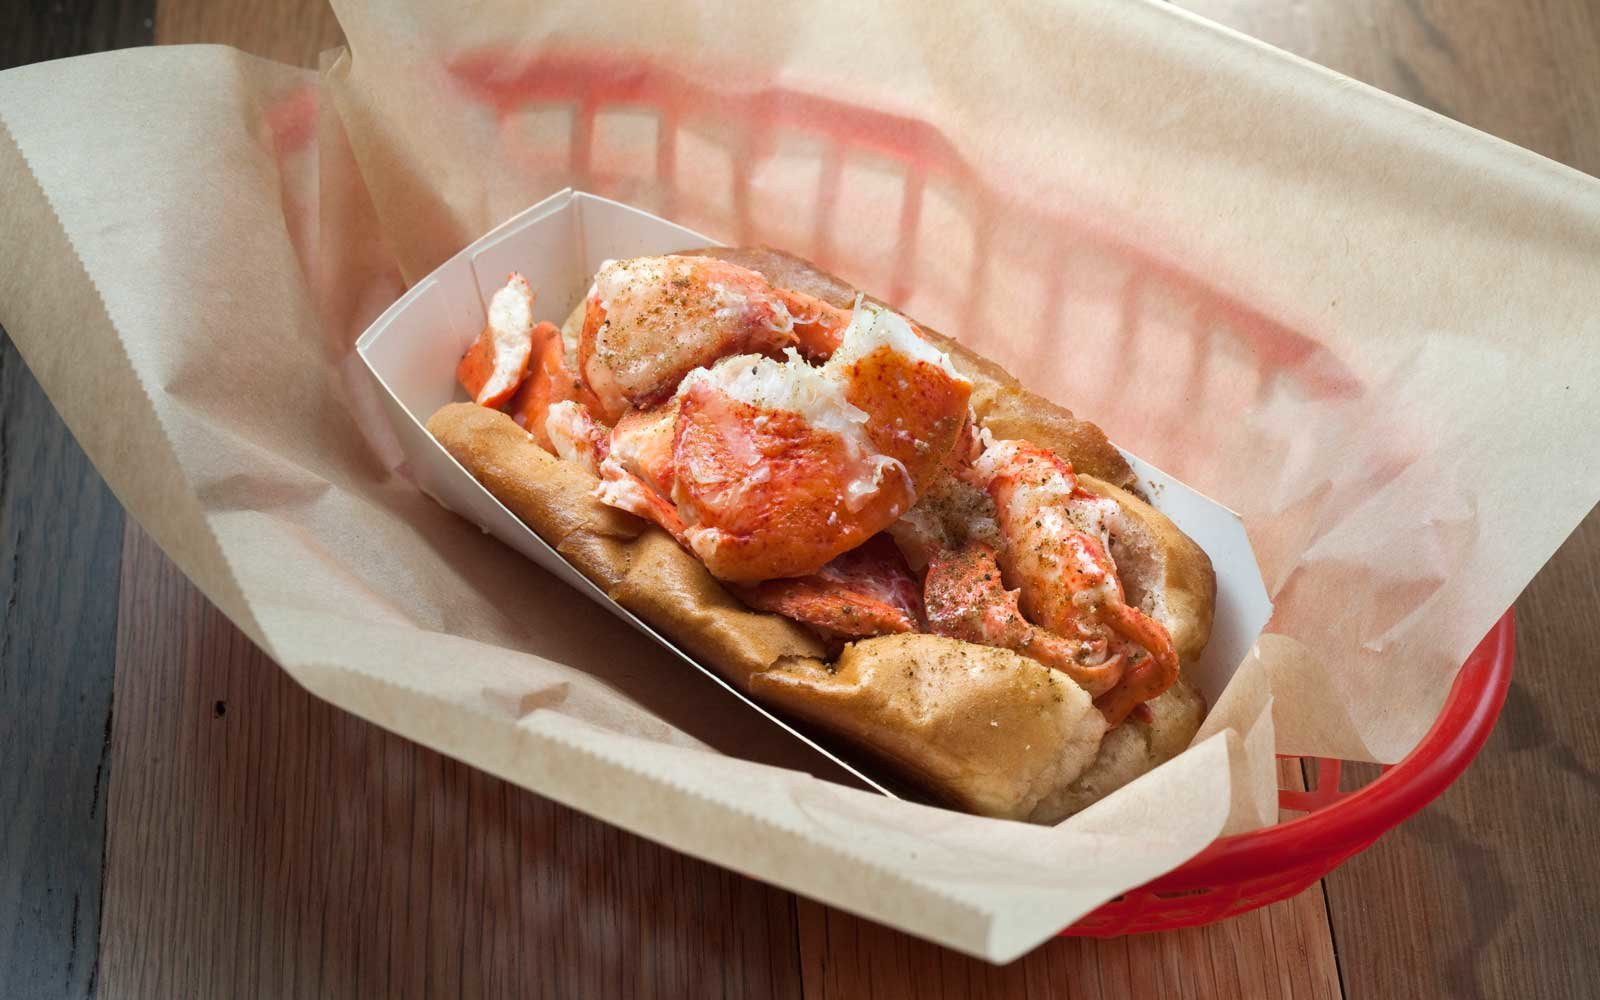 14-lukes-lobster-boston-massachusetts-YELPLOBSTERROLL0517